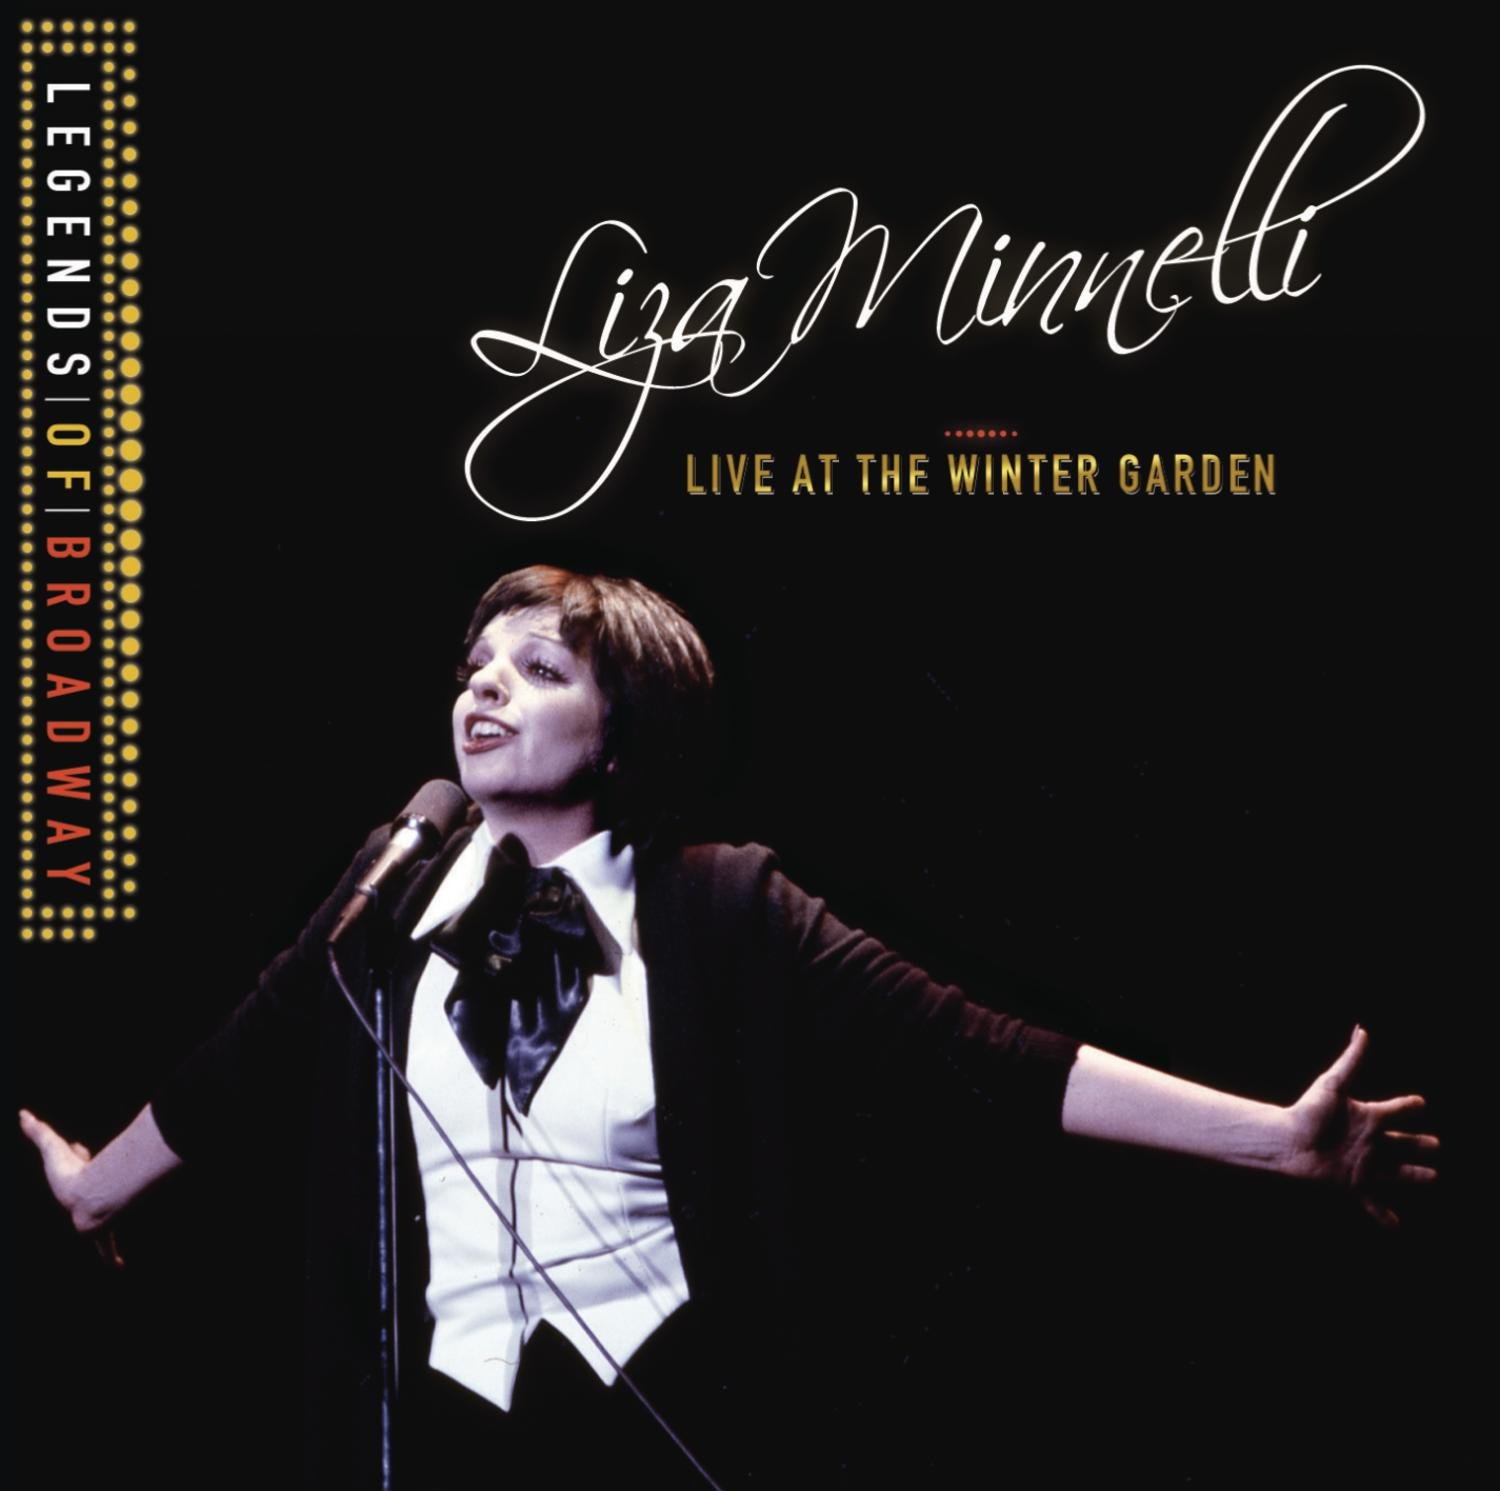 Legends of Broadway: Liza Minnelli Live at the Winter Garden